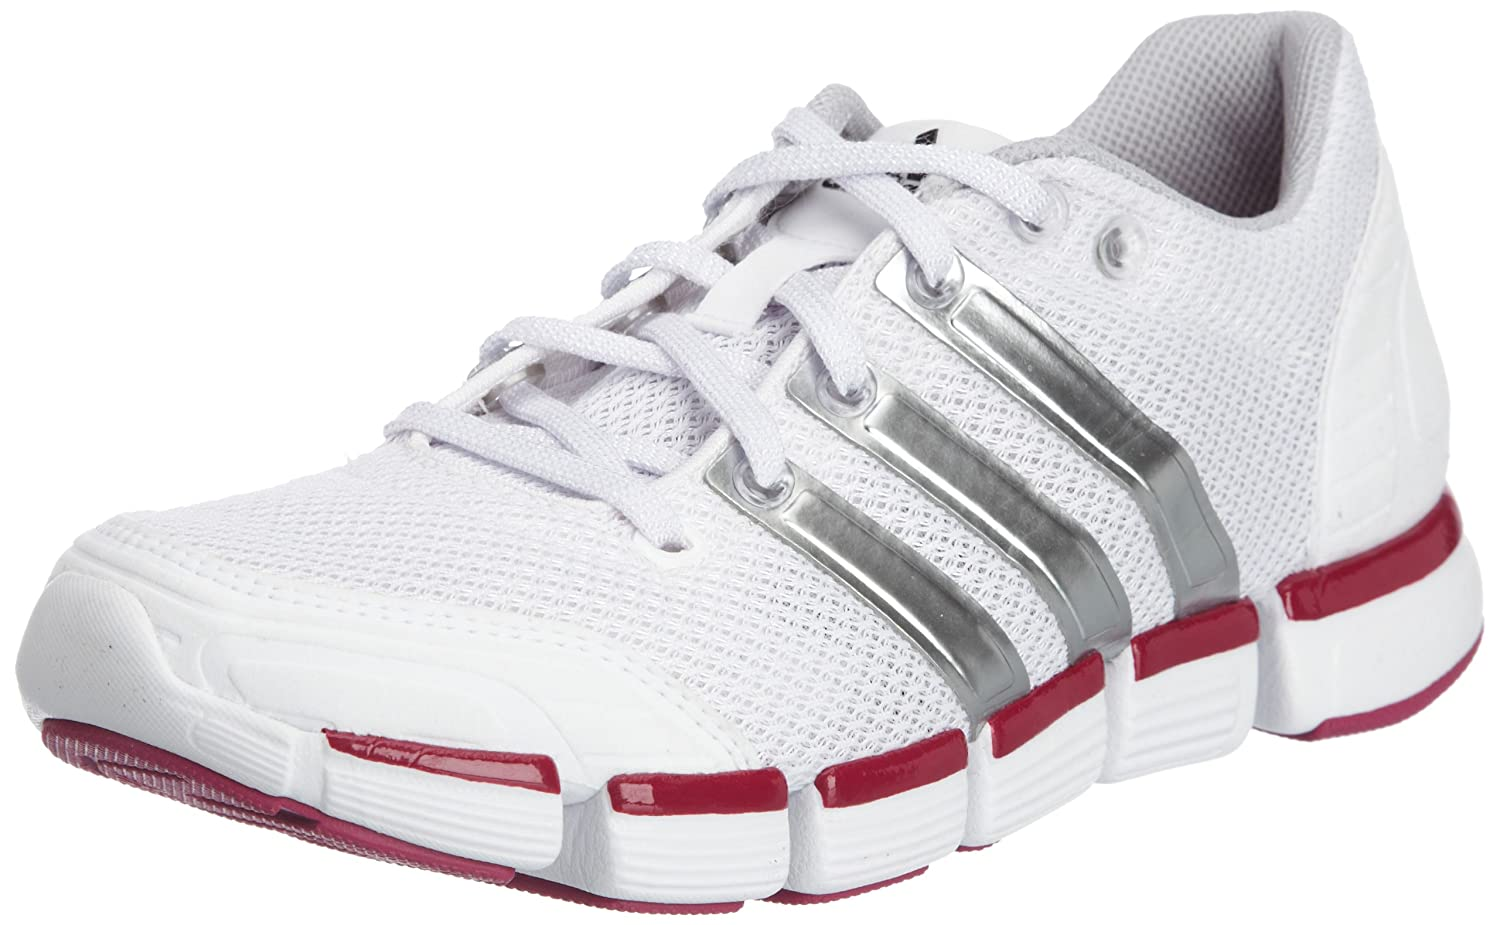 new styles bb453 81918 adidas Clima Cool Chill Women Weiss G41924 Size  36 2 3, Unisex Adult, White   Amazon.co.uk  Sports   Outdoors